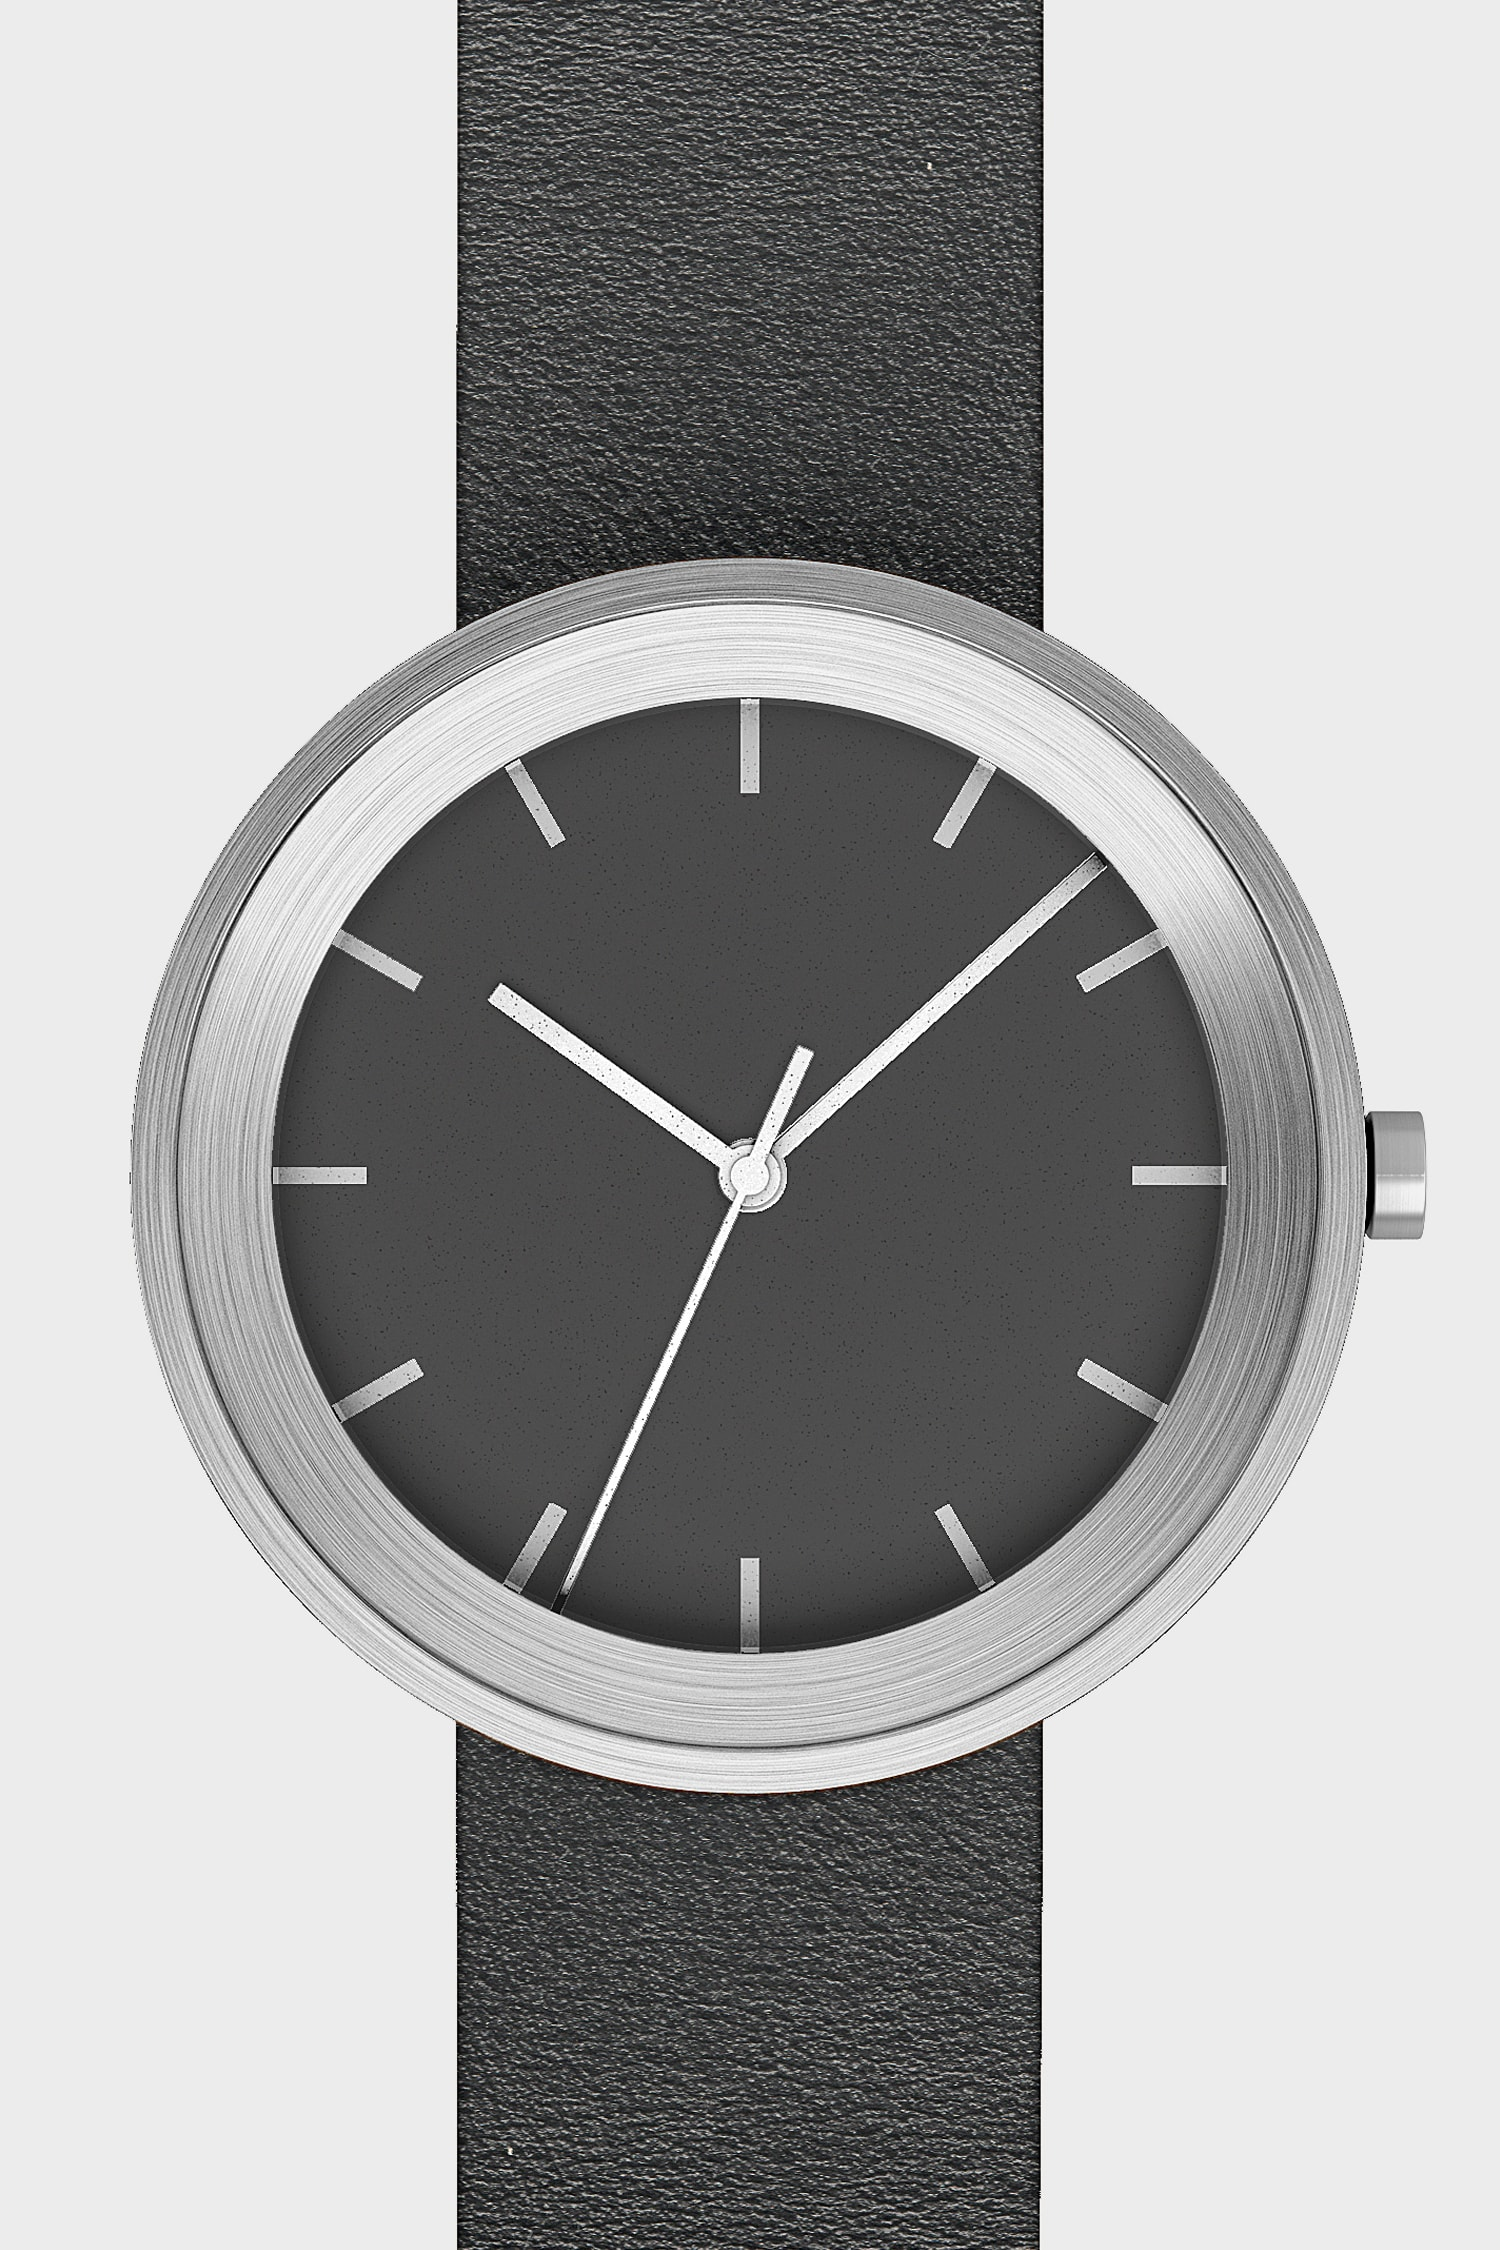 Front view of Hide Watch in black and silver.